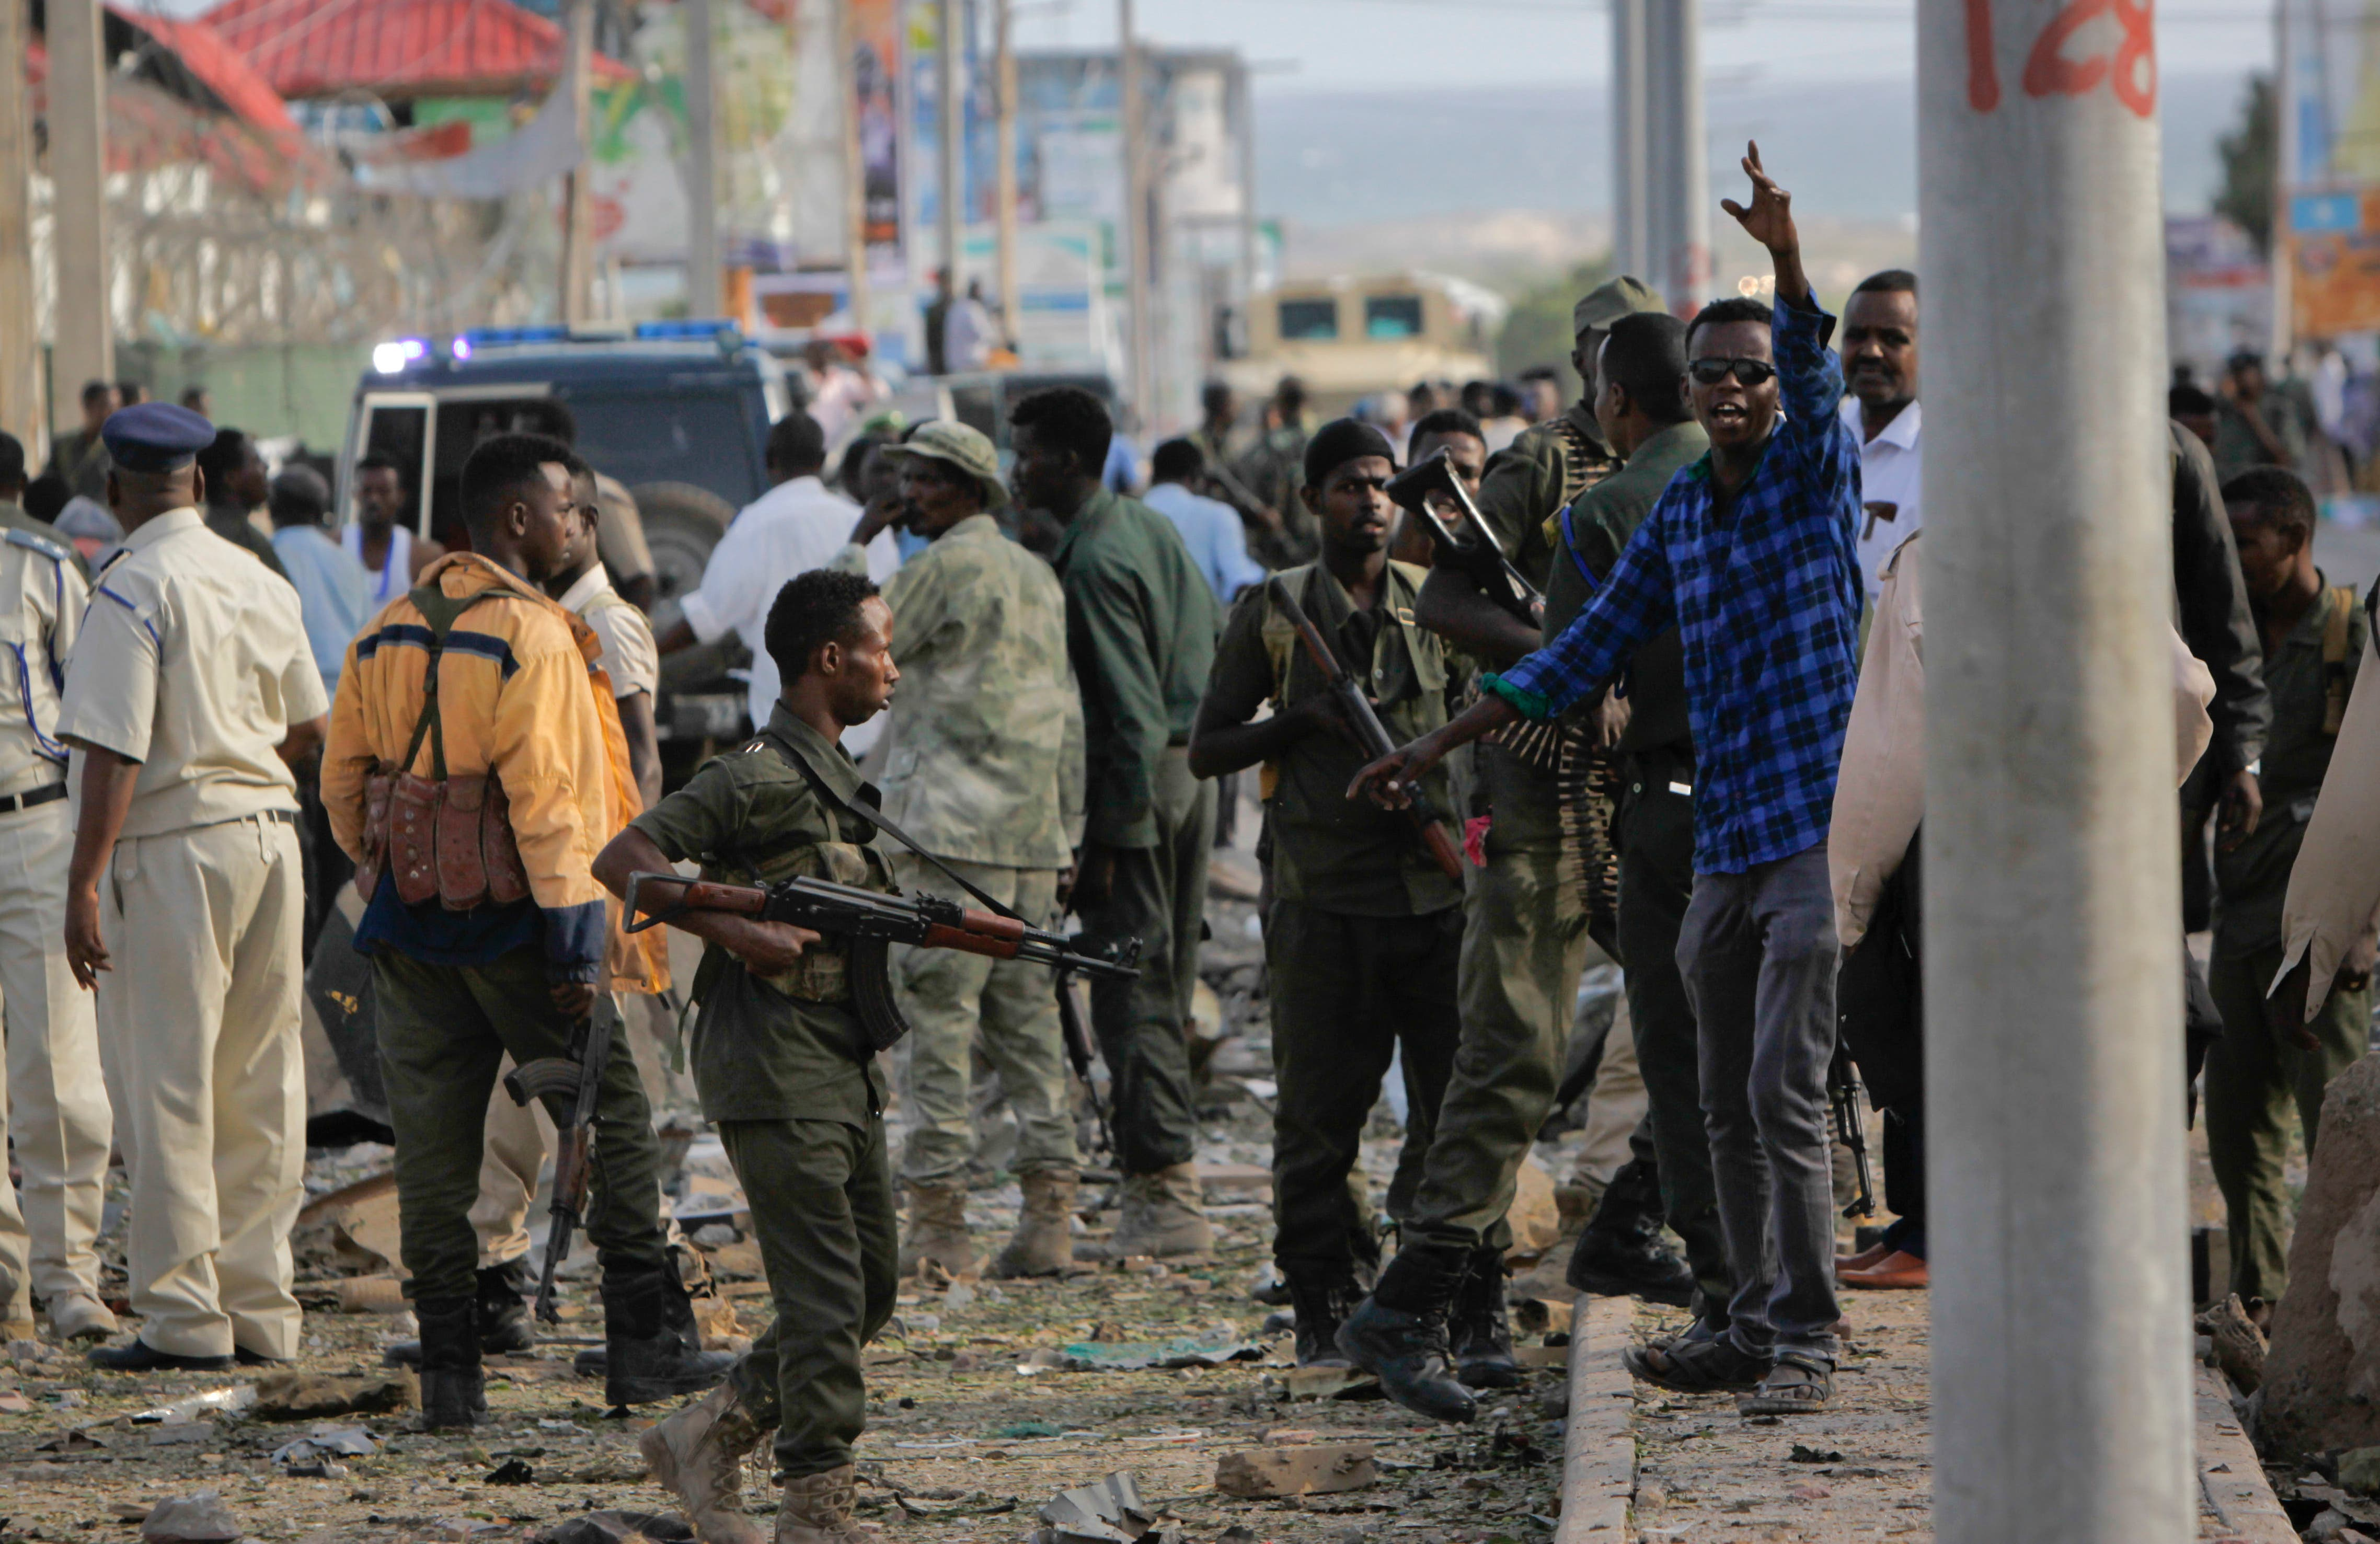 Security forces gather at the scene following a suicide car bomb attack in the capital Mogadishu, Somalia, Sunday, July 26, 2015. (AP)